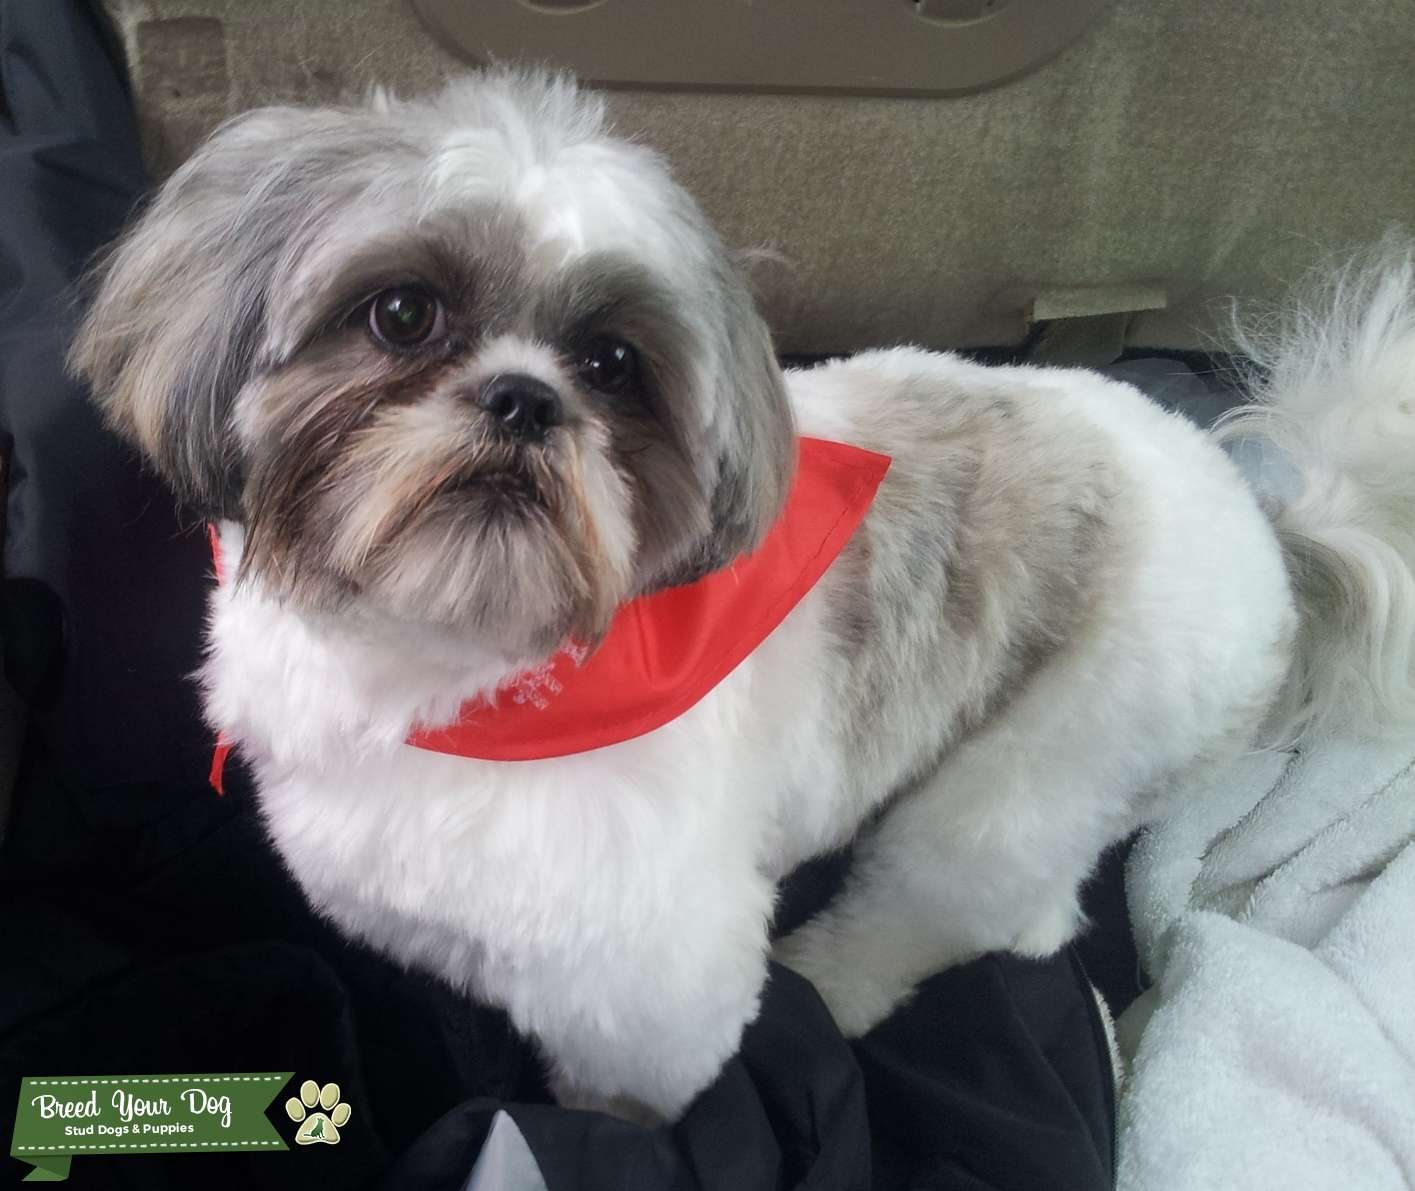 Stud Dog White Black And Silver Shih Tzu Breed Your Dog